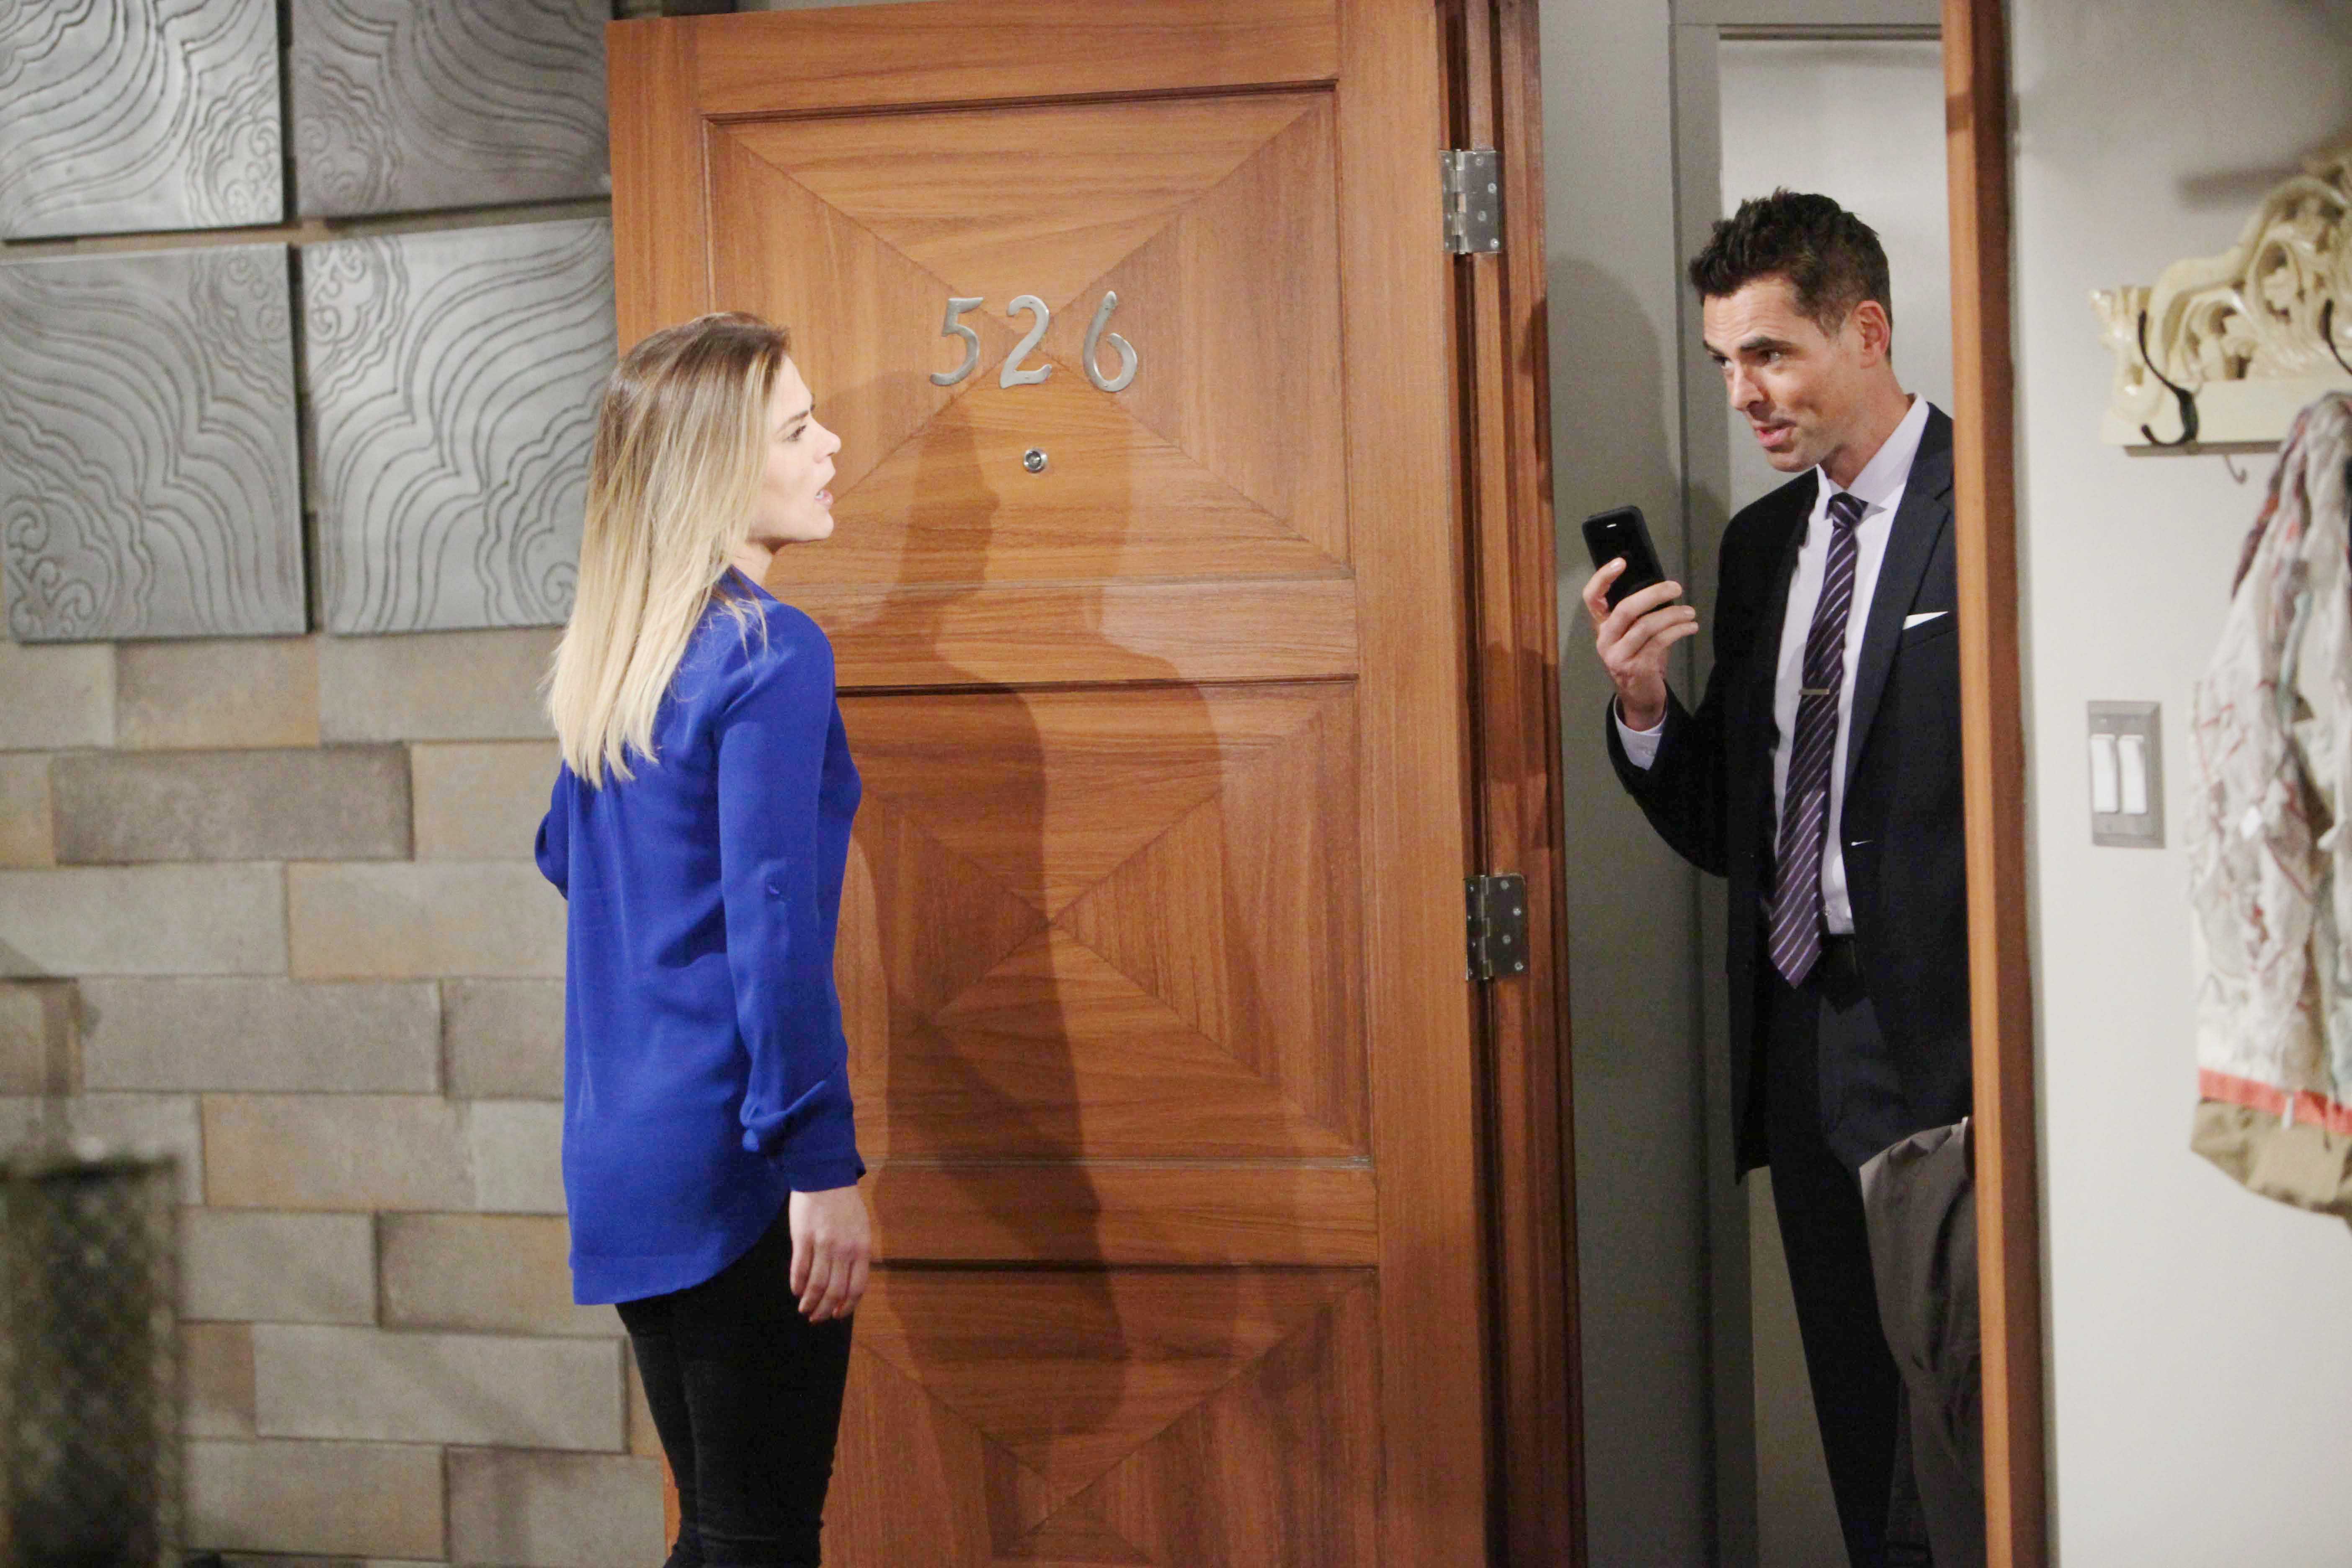 The Young and the Restless Recap: April 17 – April 21 *Spoiler Alert*